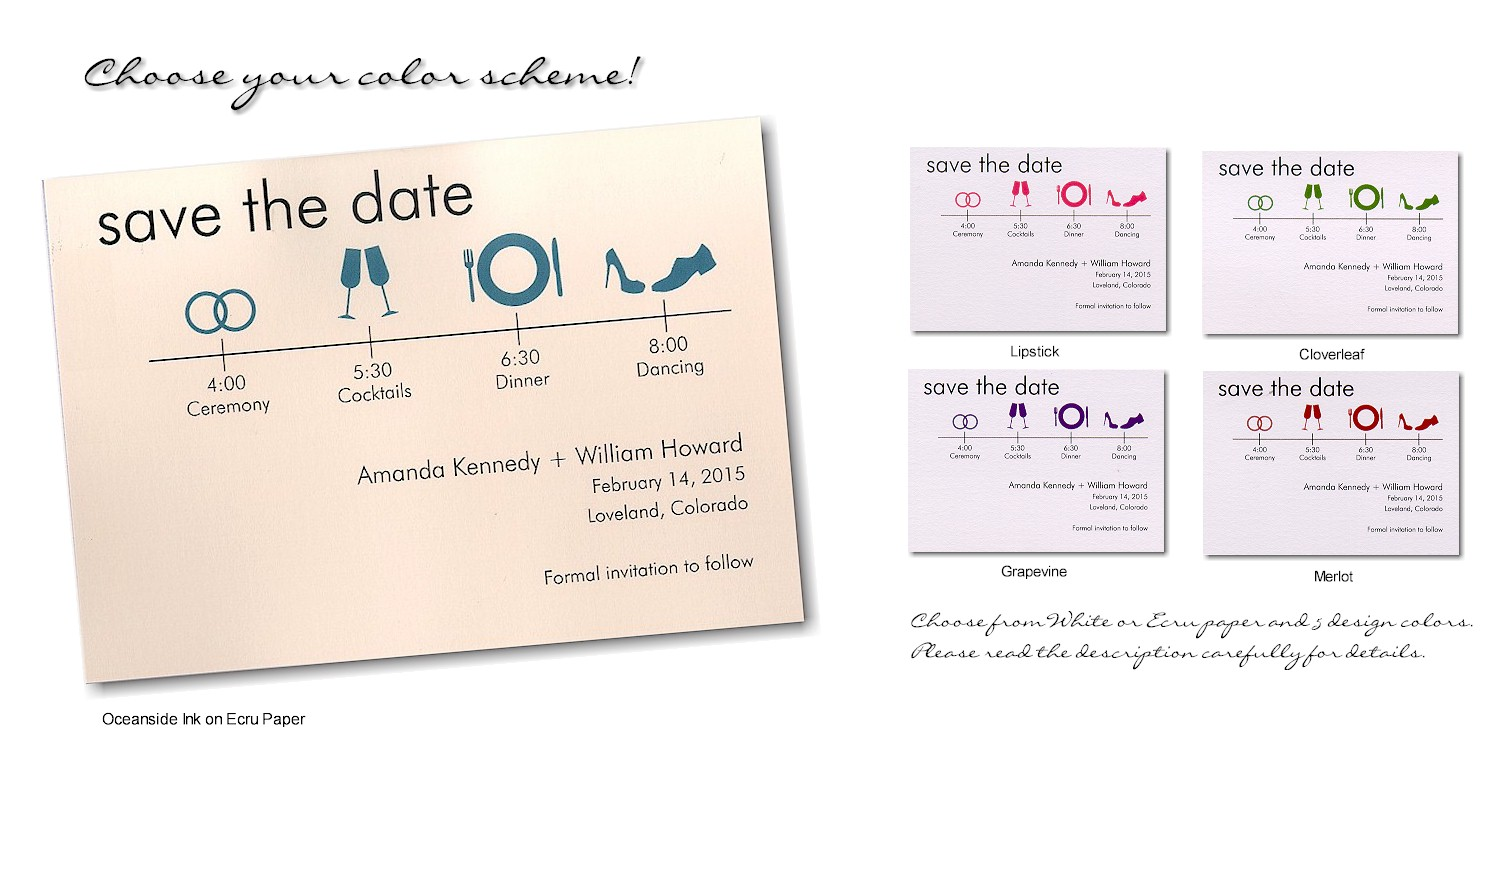 Vineyard Wedding Invitation is perfect invitations layout